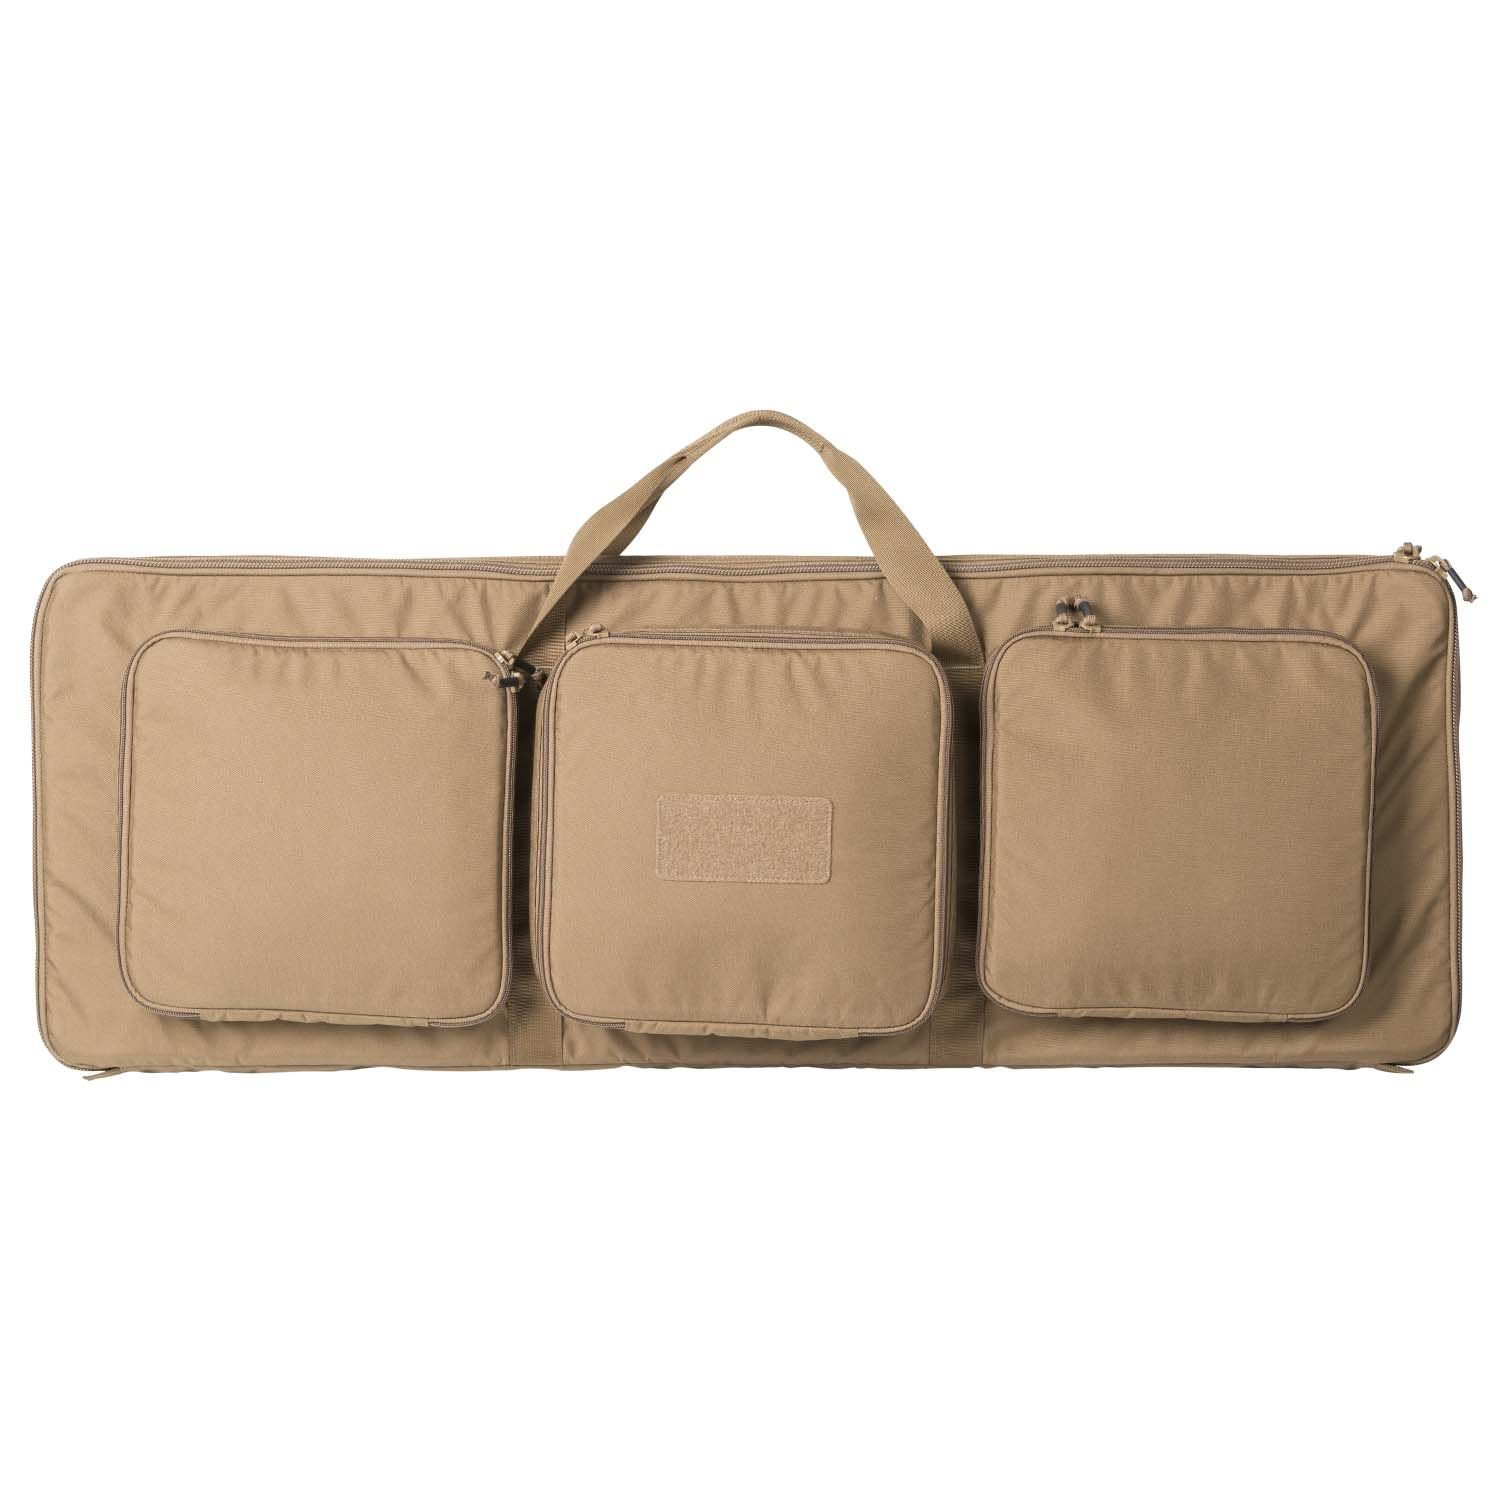 Puzdro na pušku RIFLE BAG 18® COYOTE